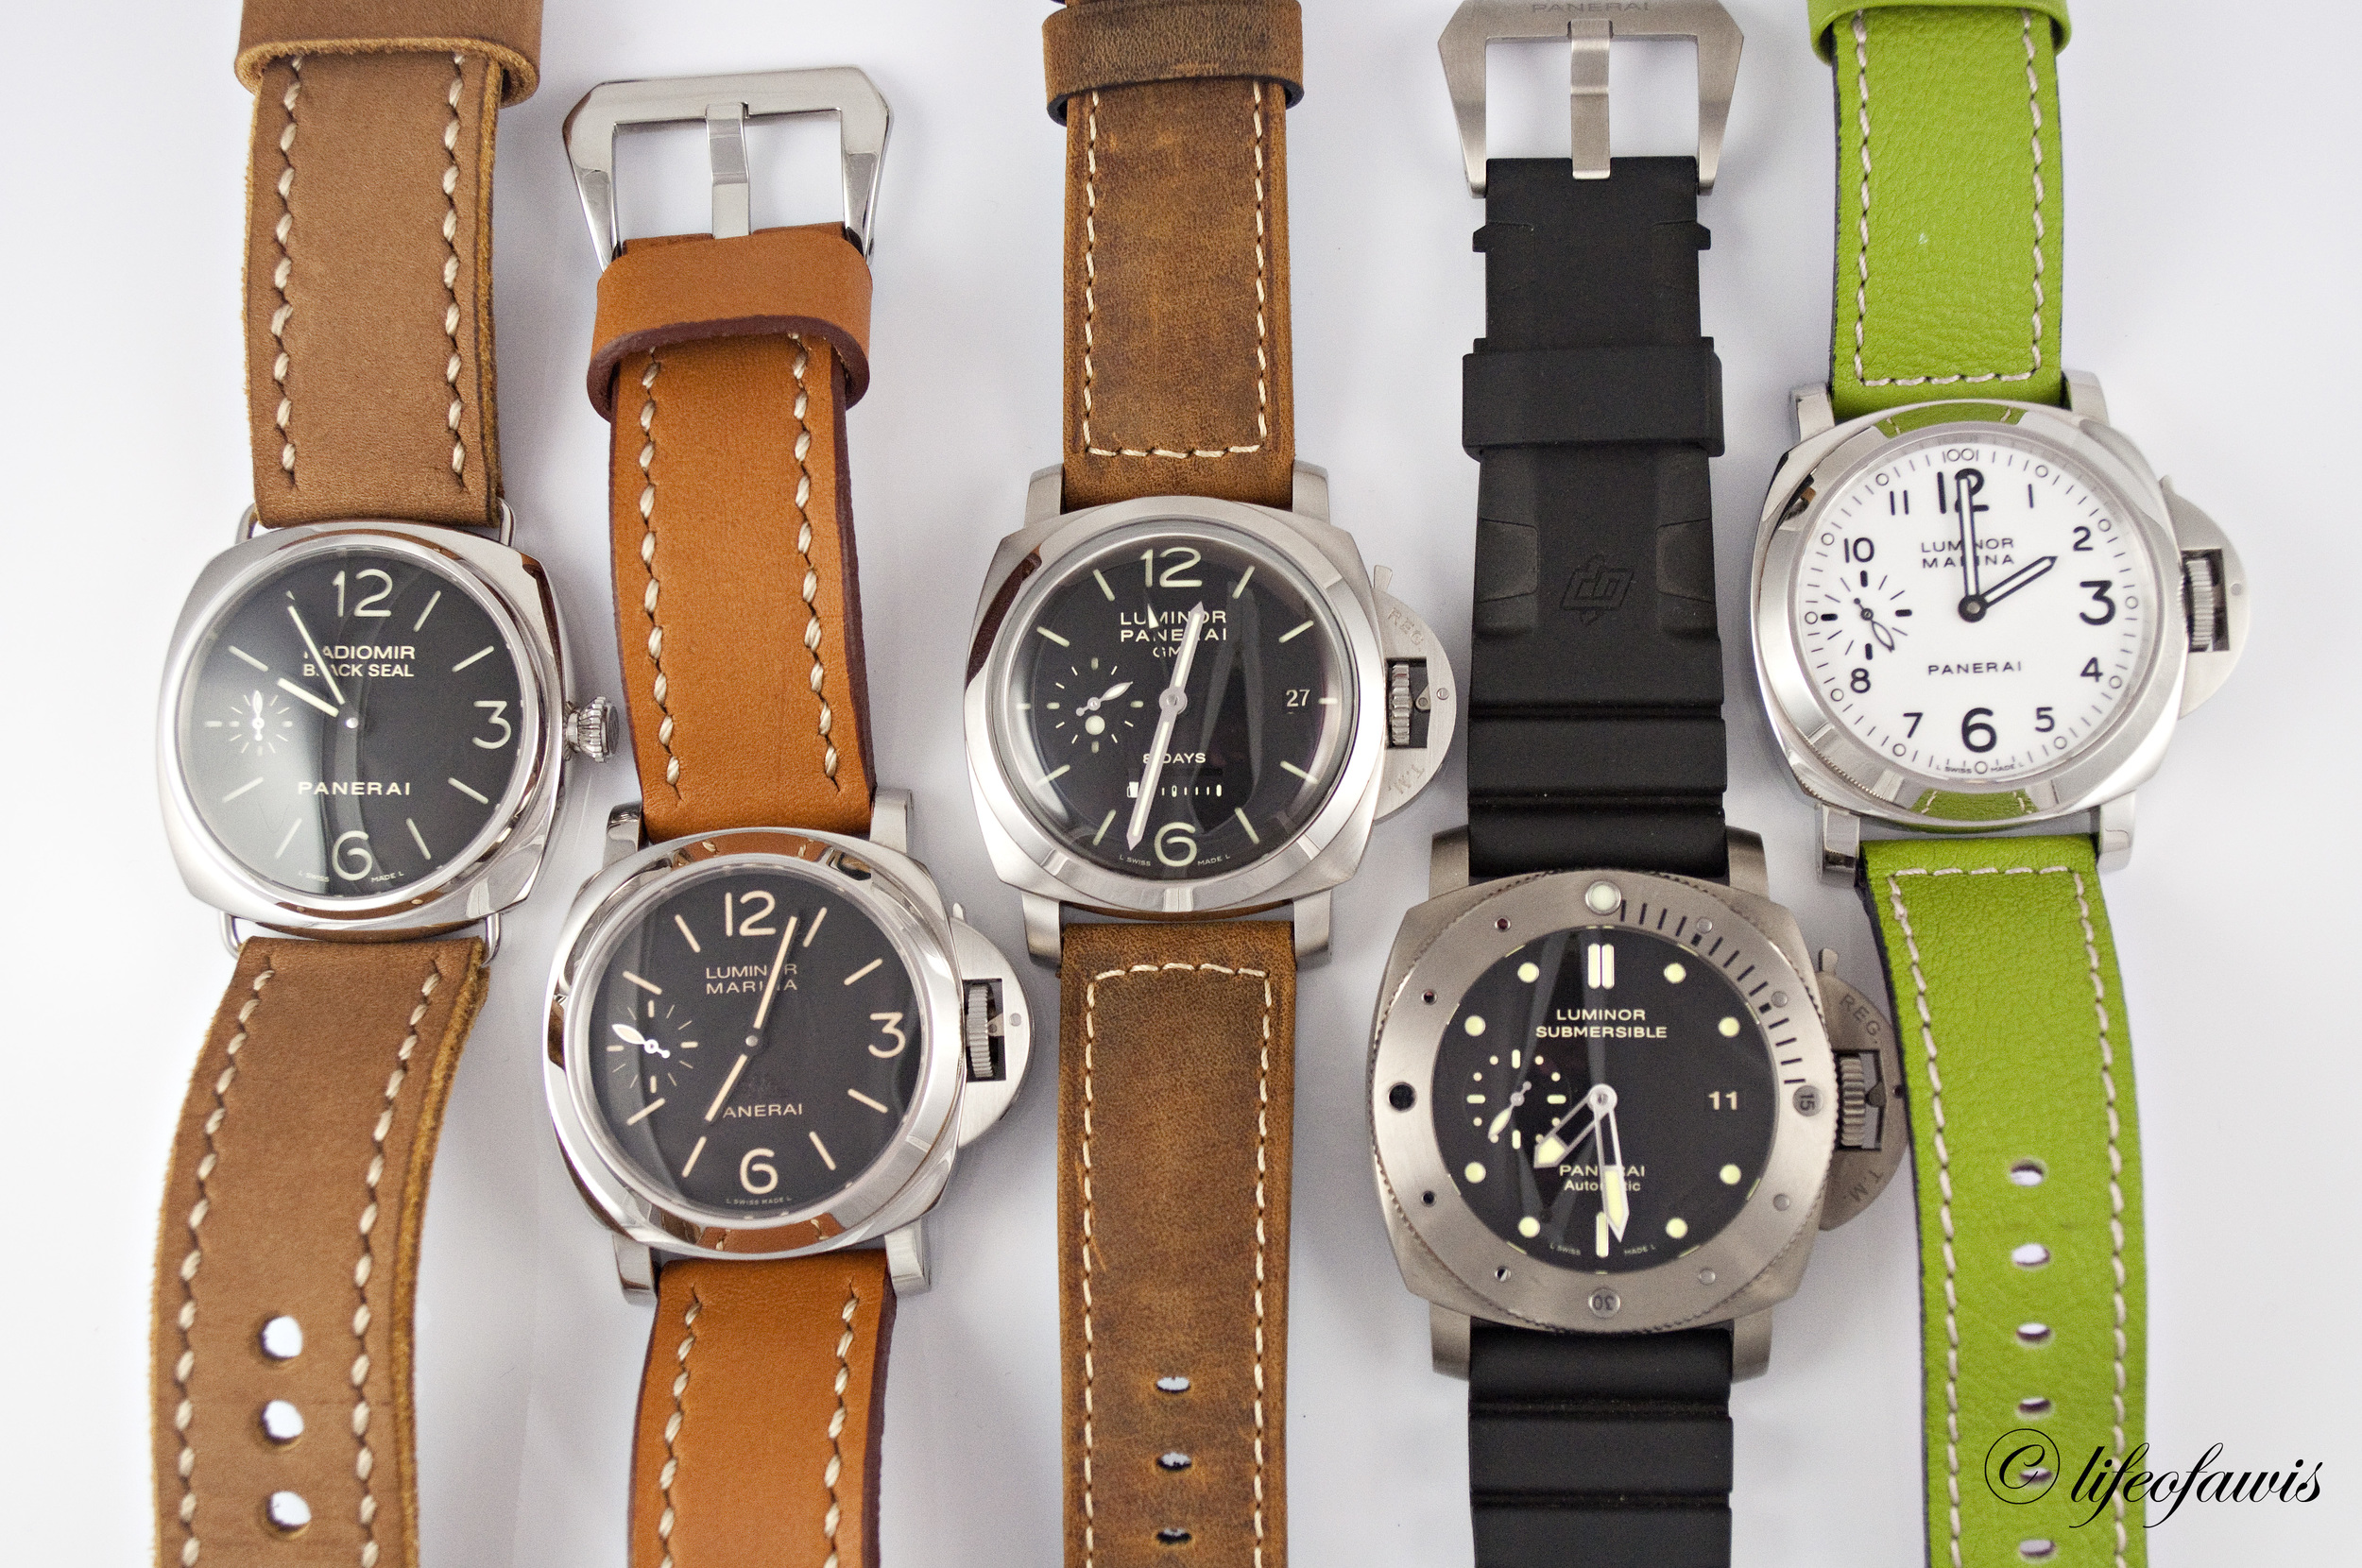 From left to right: PAM 183, PAM 416, PAM 233, PAM 305, and PAM 113.